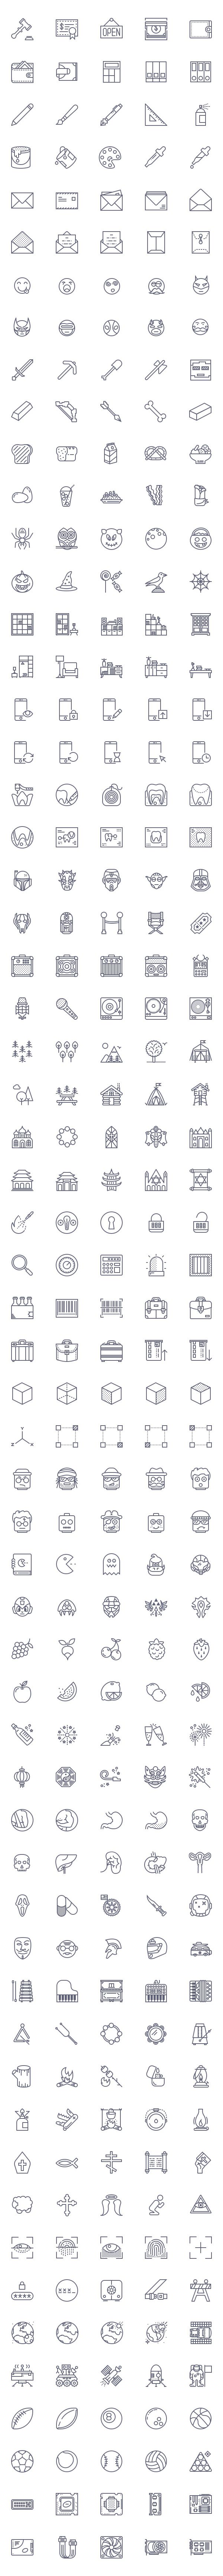 Free Outline Icons Set (95 Icons) Download Free Pixel perfect Social, Mobile Icons PSD (48 Icons) Download Free Line Icon Set AI and EPS (48 Icons) Download Free Puppets Stroke Icons – AI, EPS and …